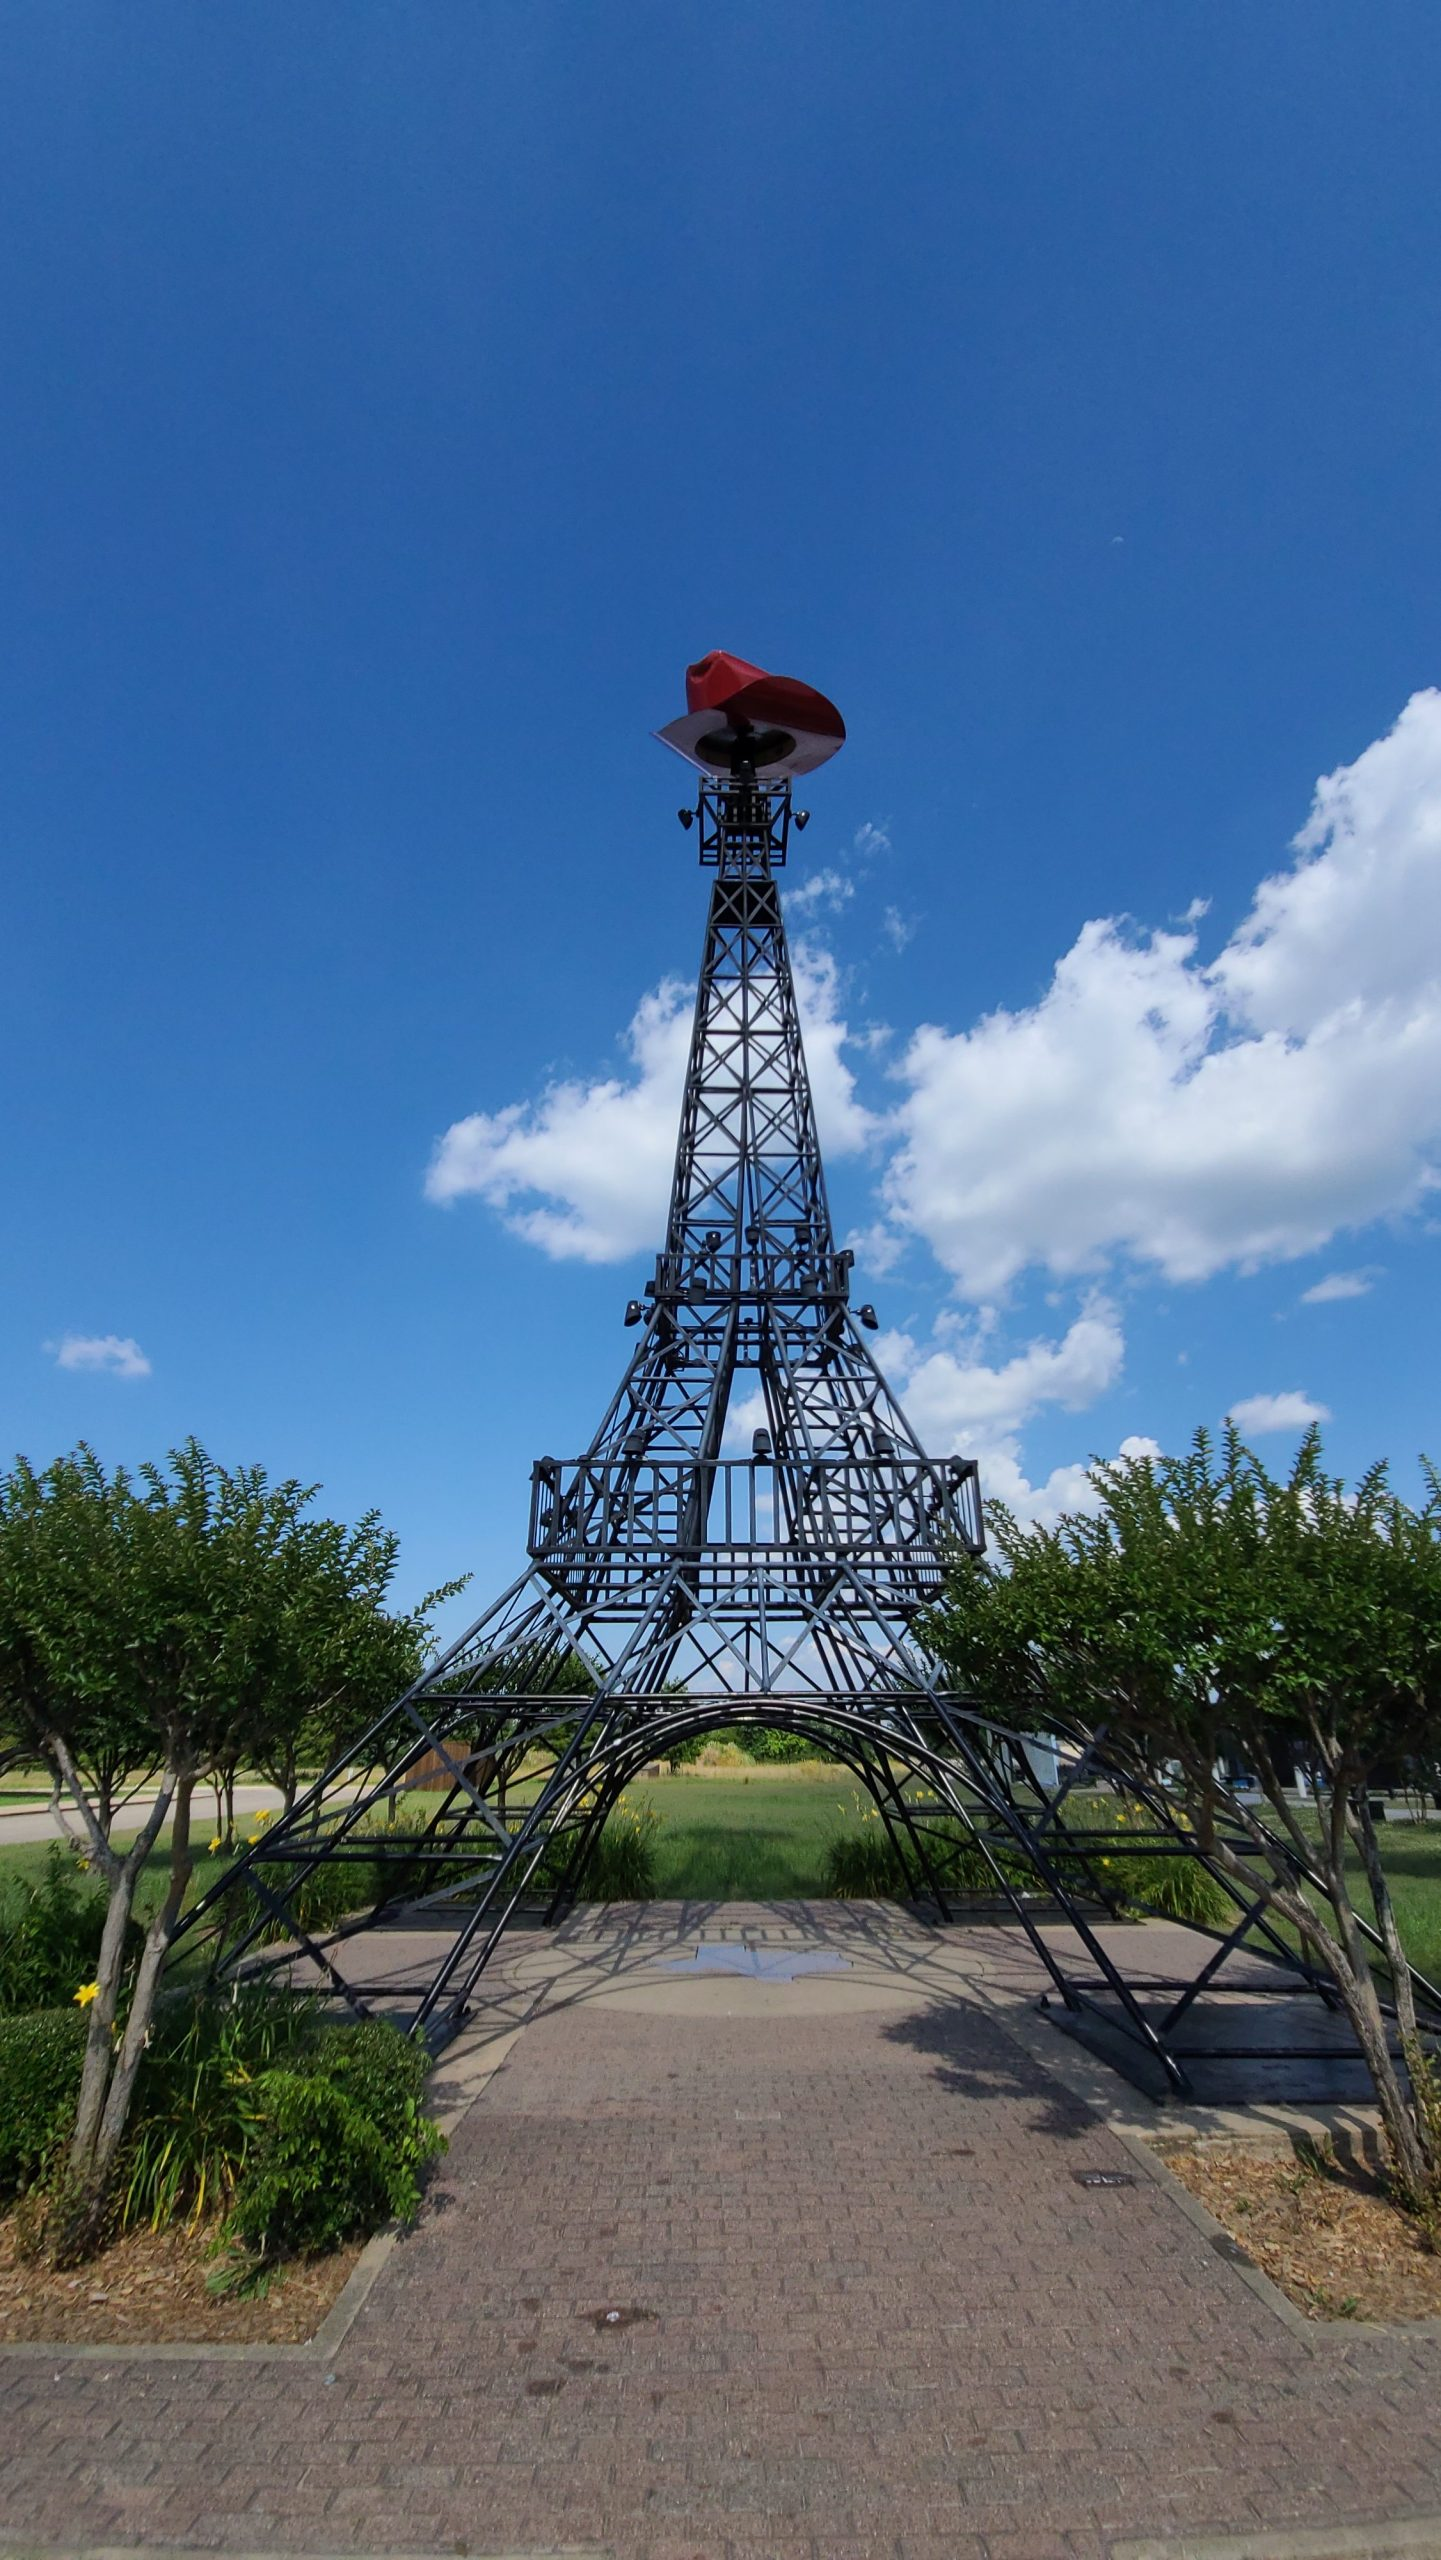 Eiffel Tower in Paris, Texas with a red cowboy hat